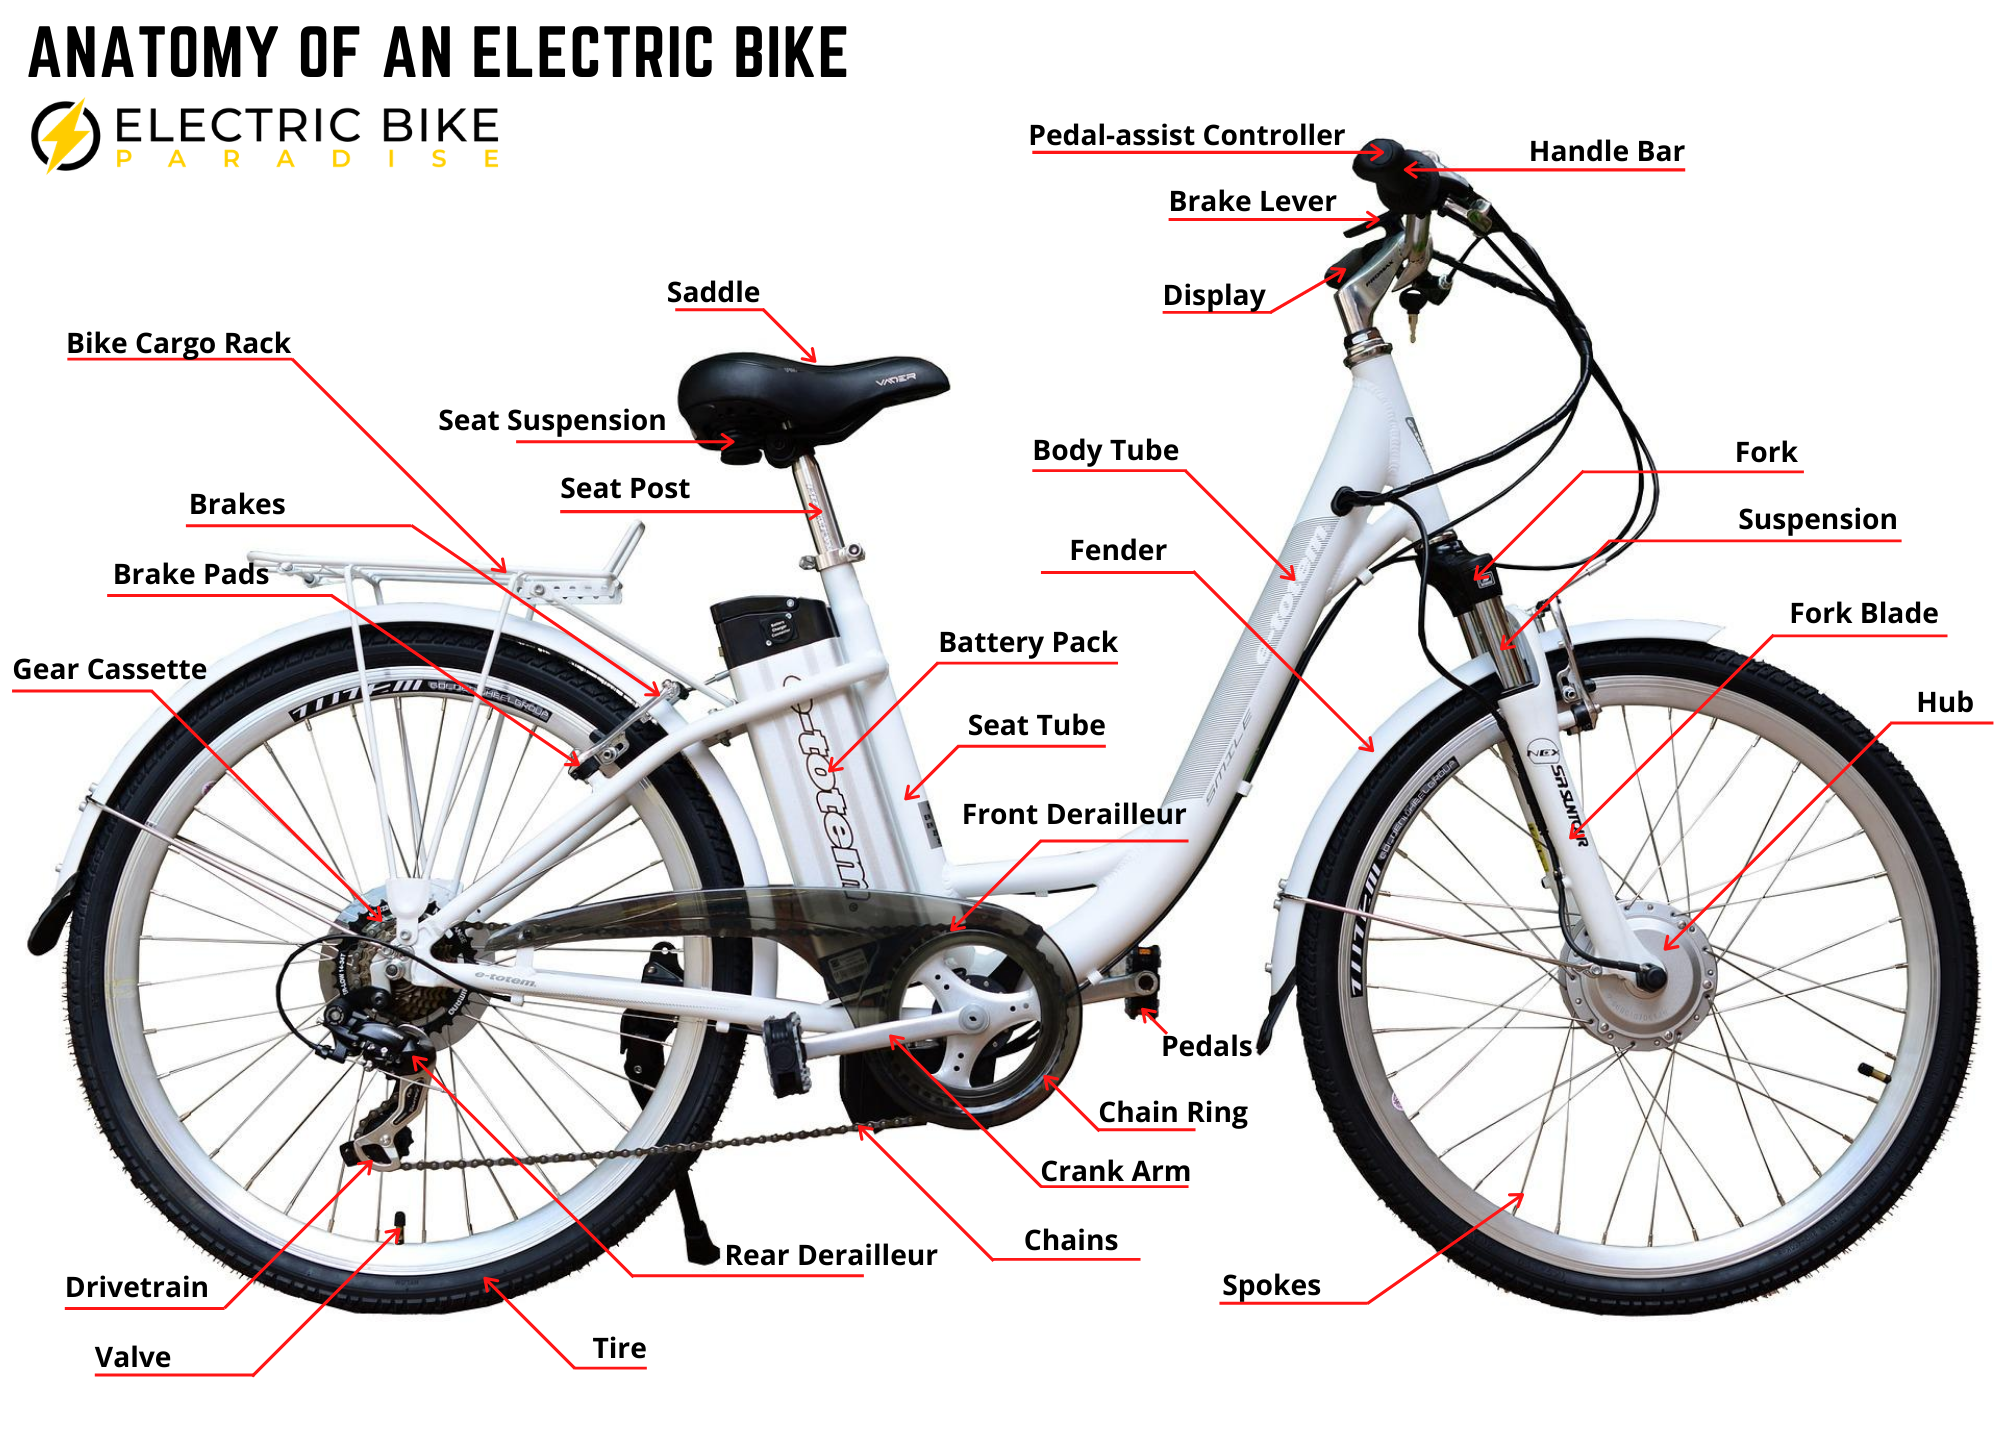 Parts of an Electric Bike